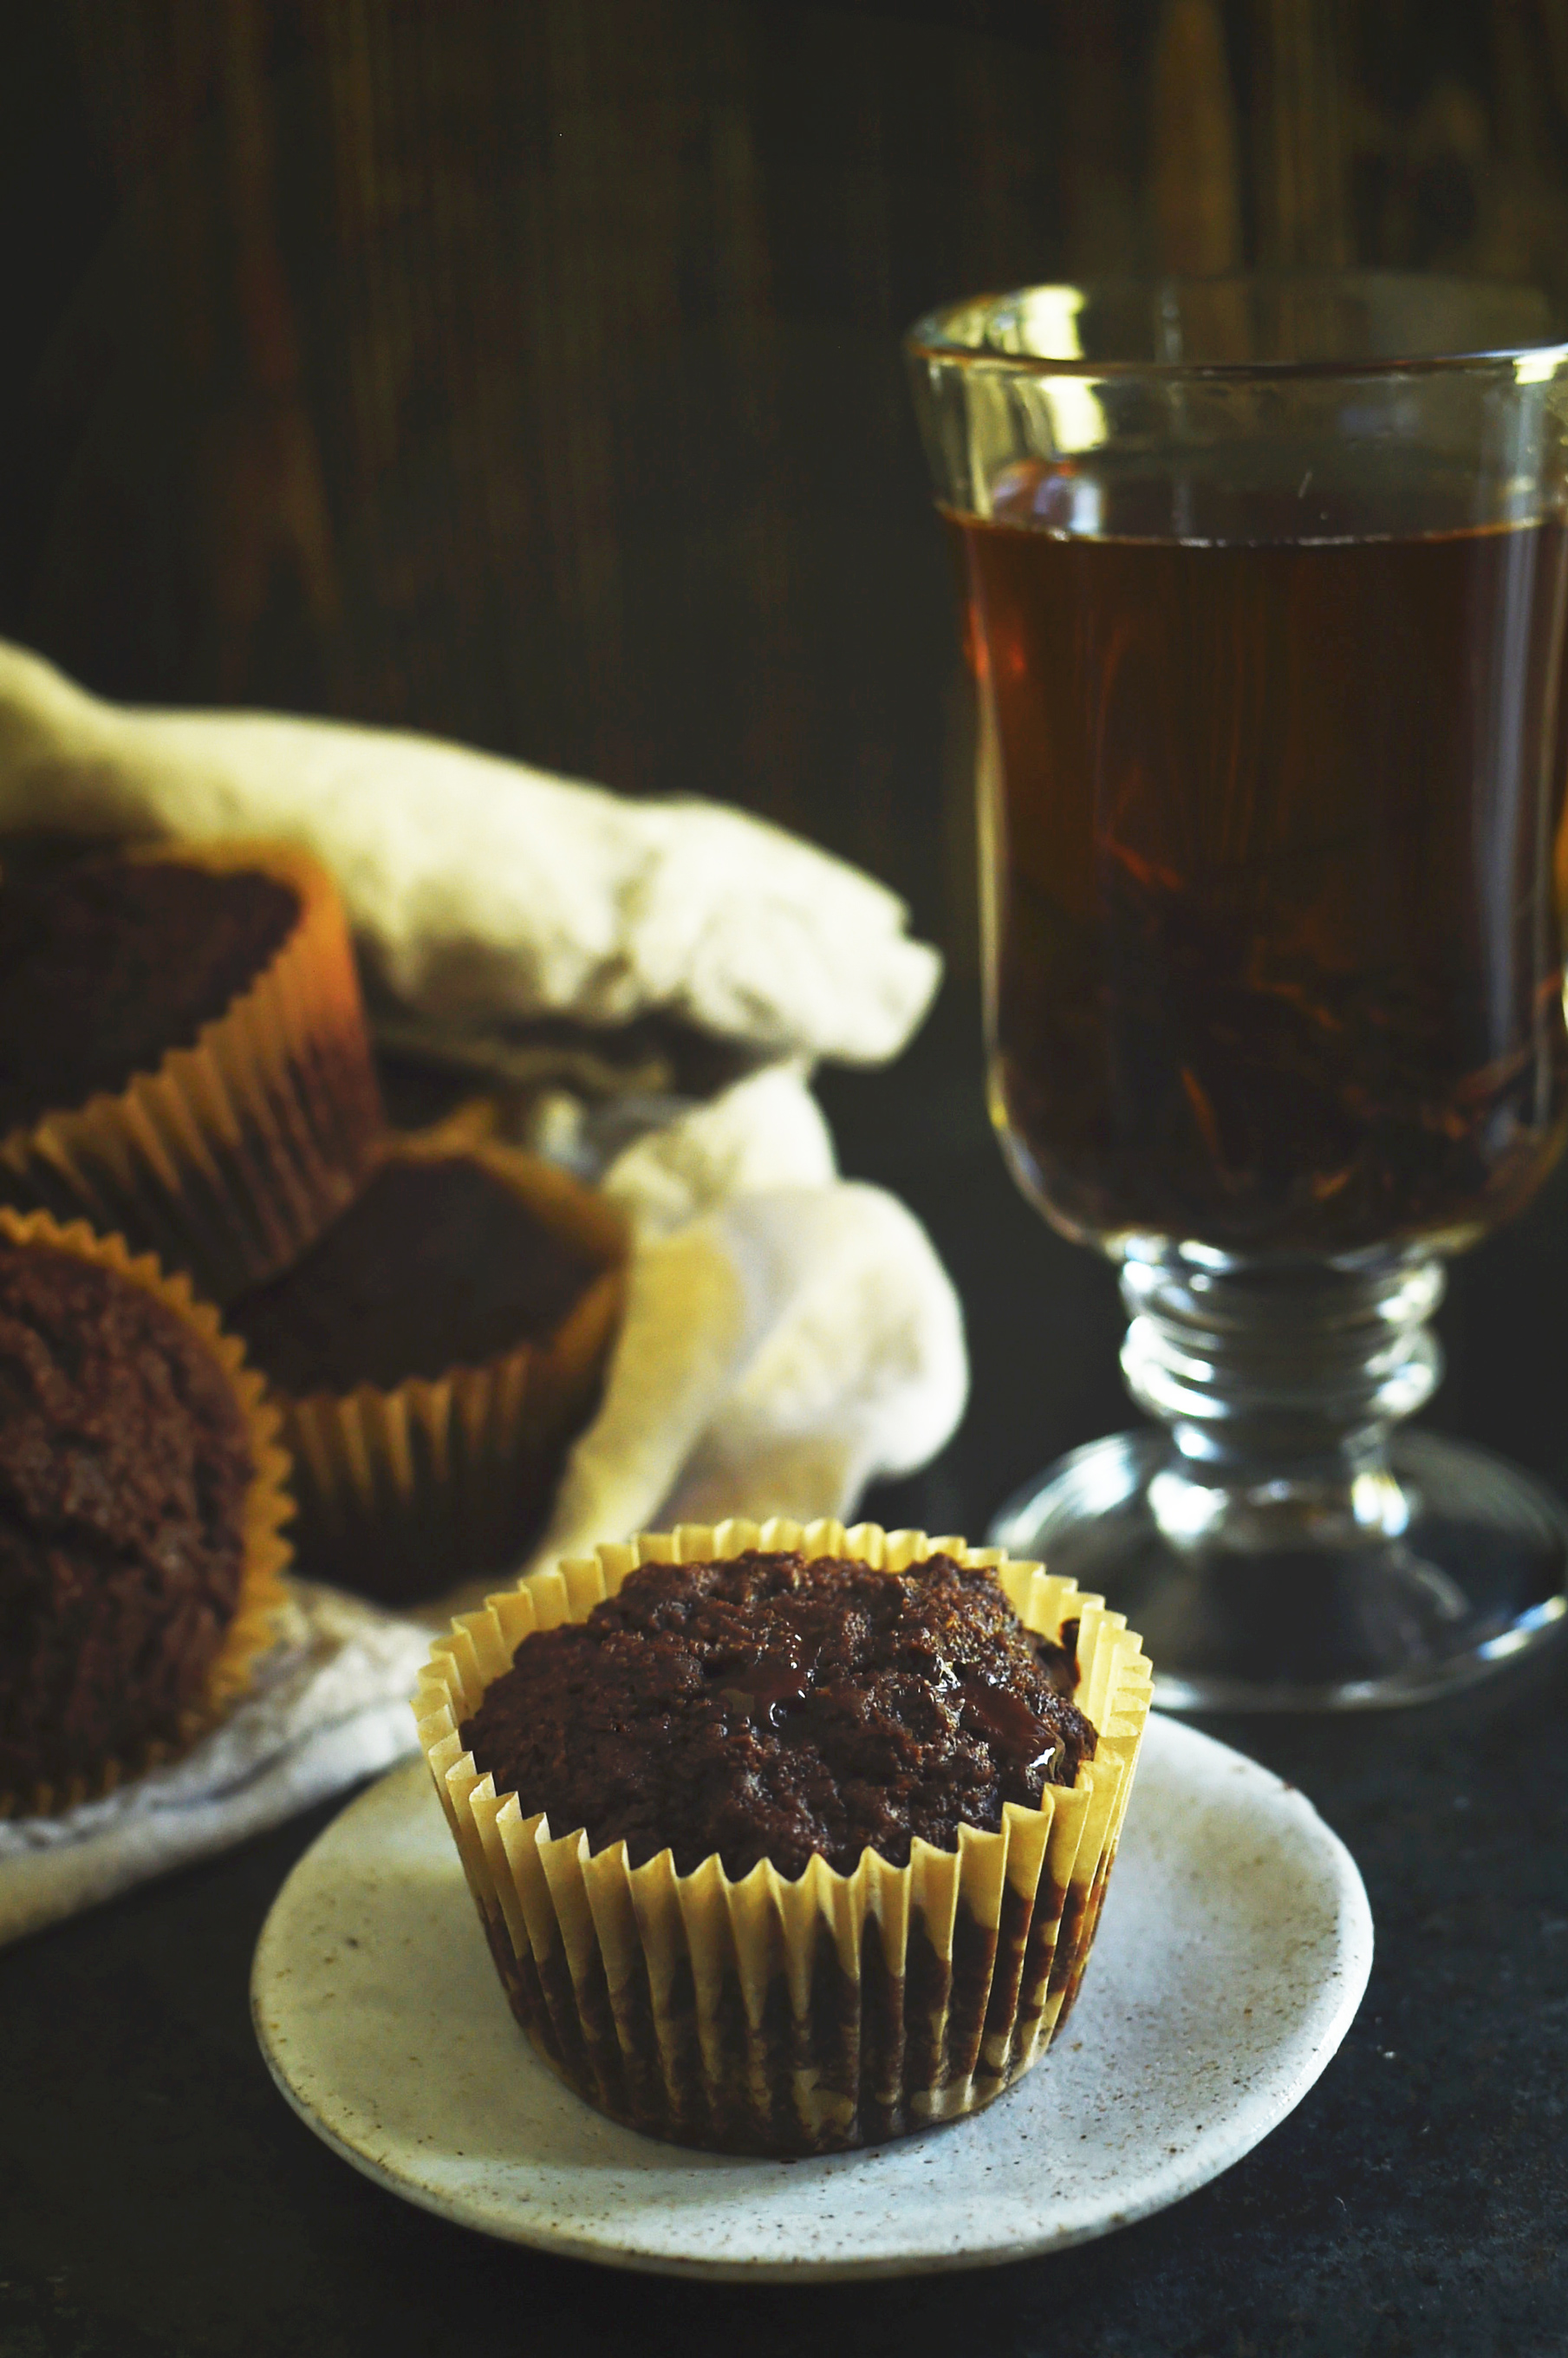 Low-Carb Double Chocolate Muffins Recipe-One muffin on a serving plate with tea behind.